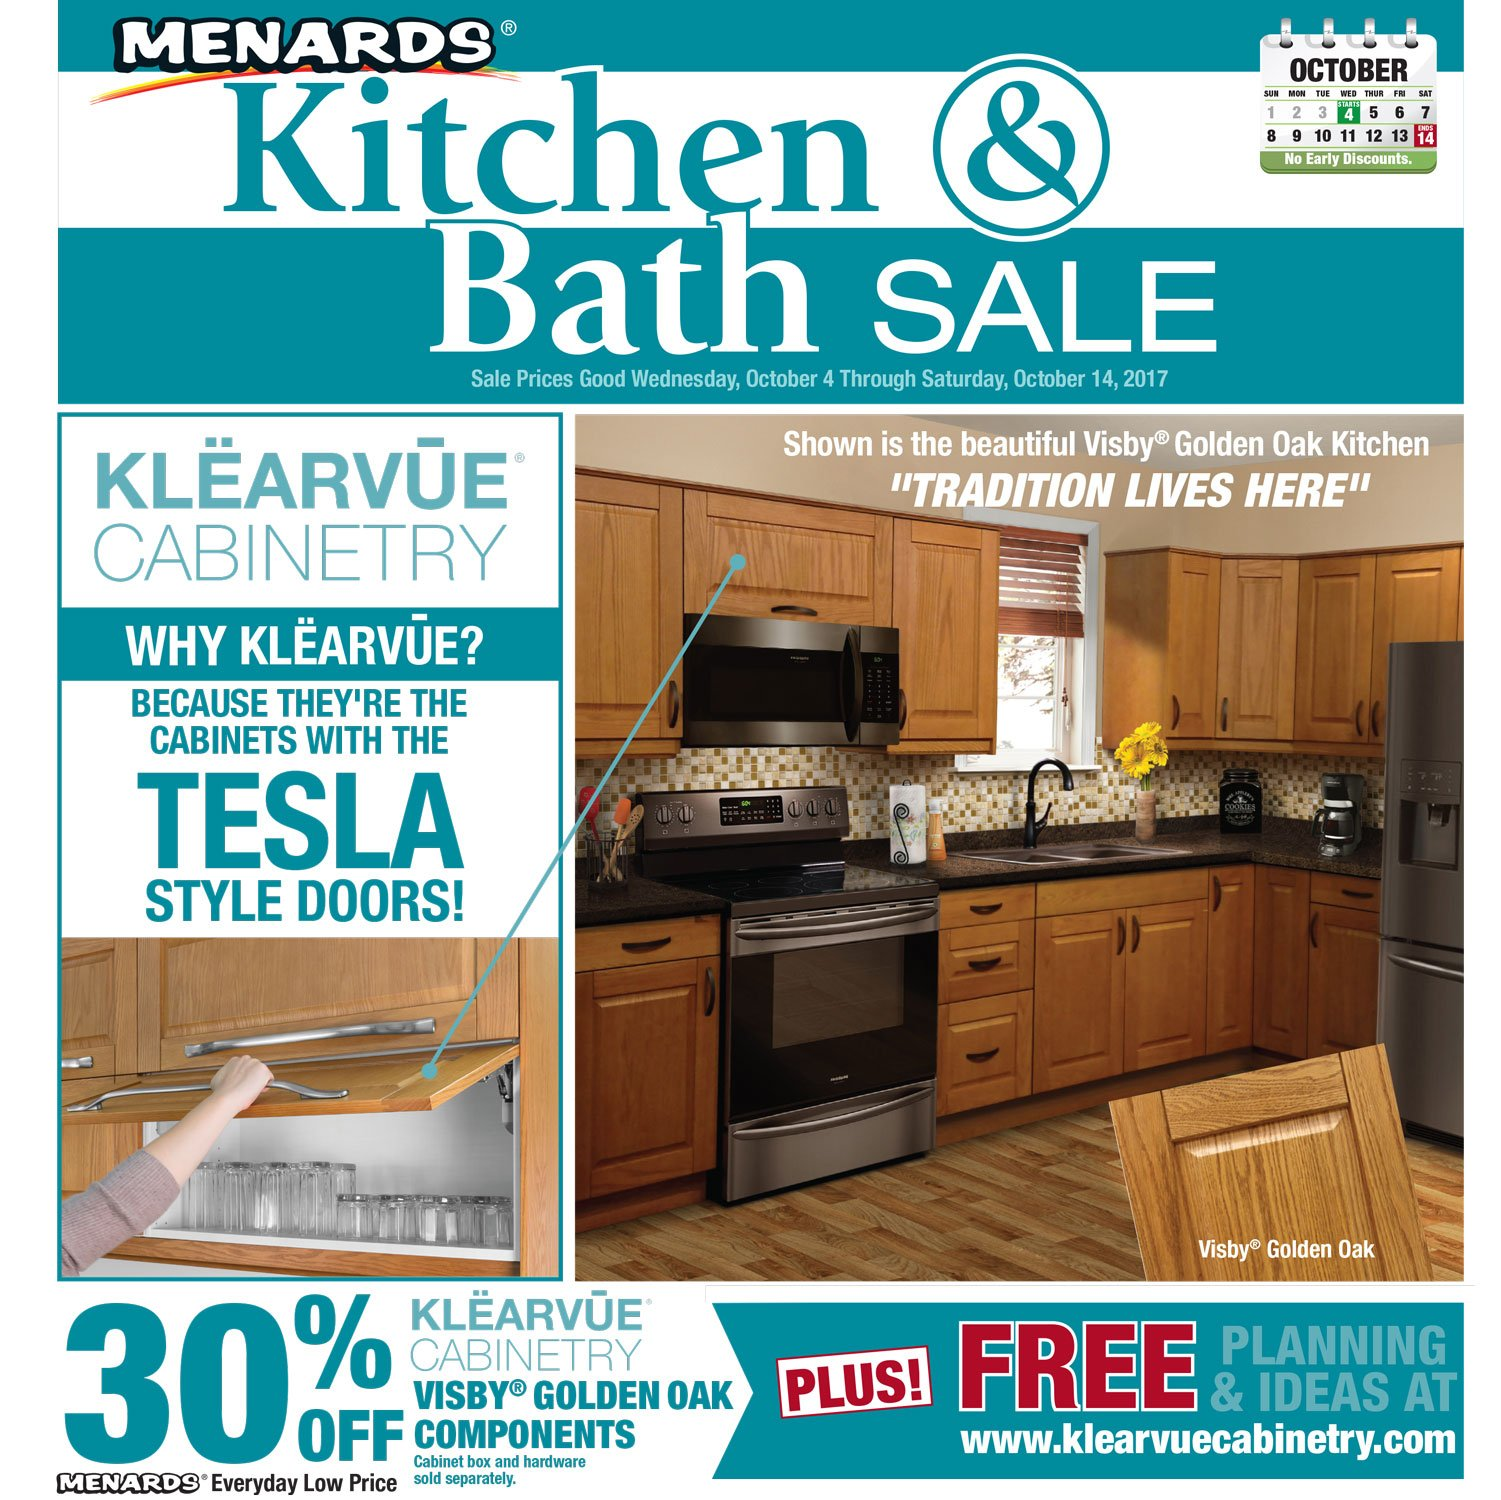 Menards On Twitter Time For A Remodel Our Kitchen And Bath Sale Starts Today Save On Everything From New Cabinets To Stylish Sinks Https T Co Diardbynkm Https T Co U6q24jfduh